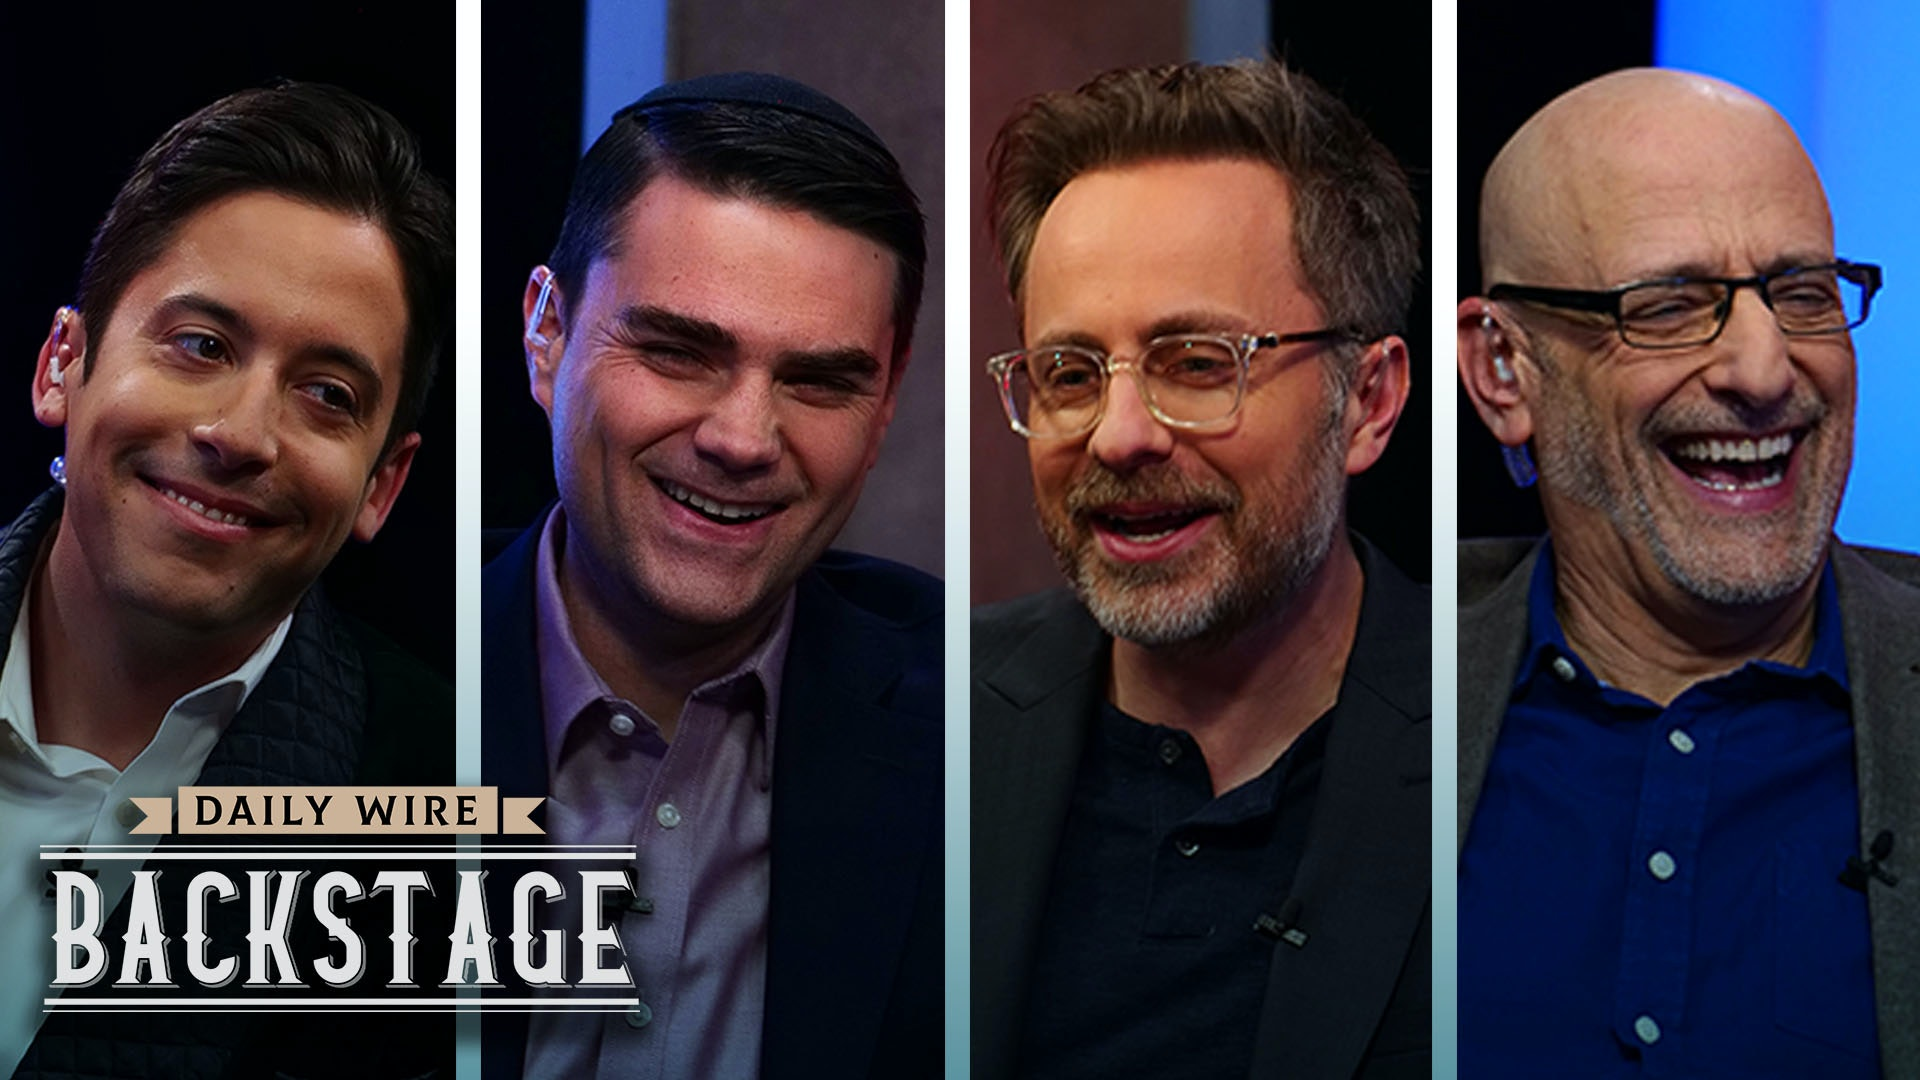 Daily Wire Backstage: And Iran... (I Ran So Far Away)